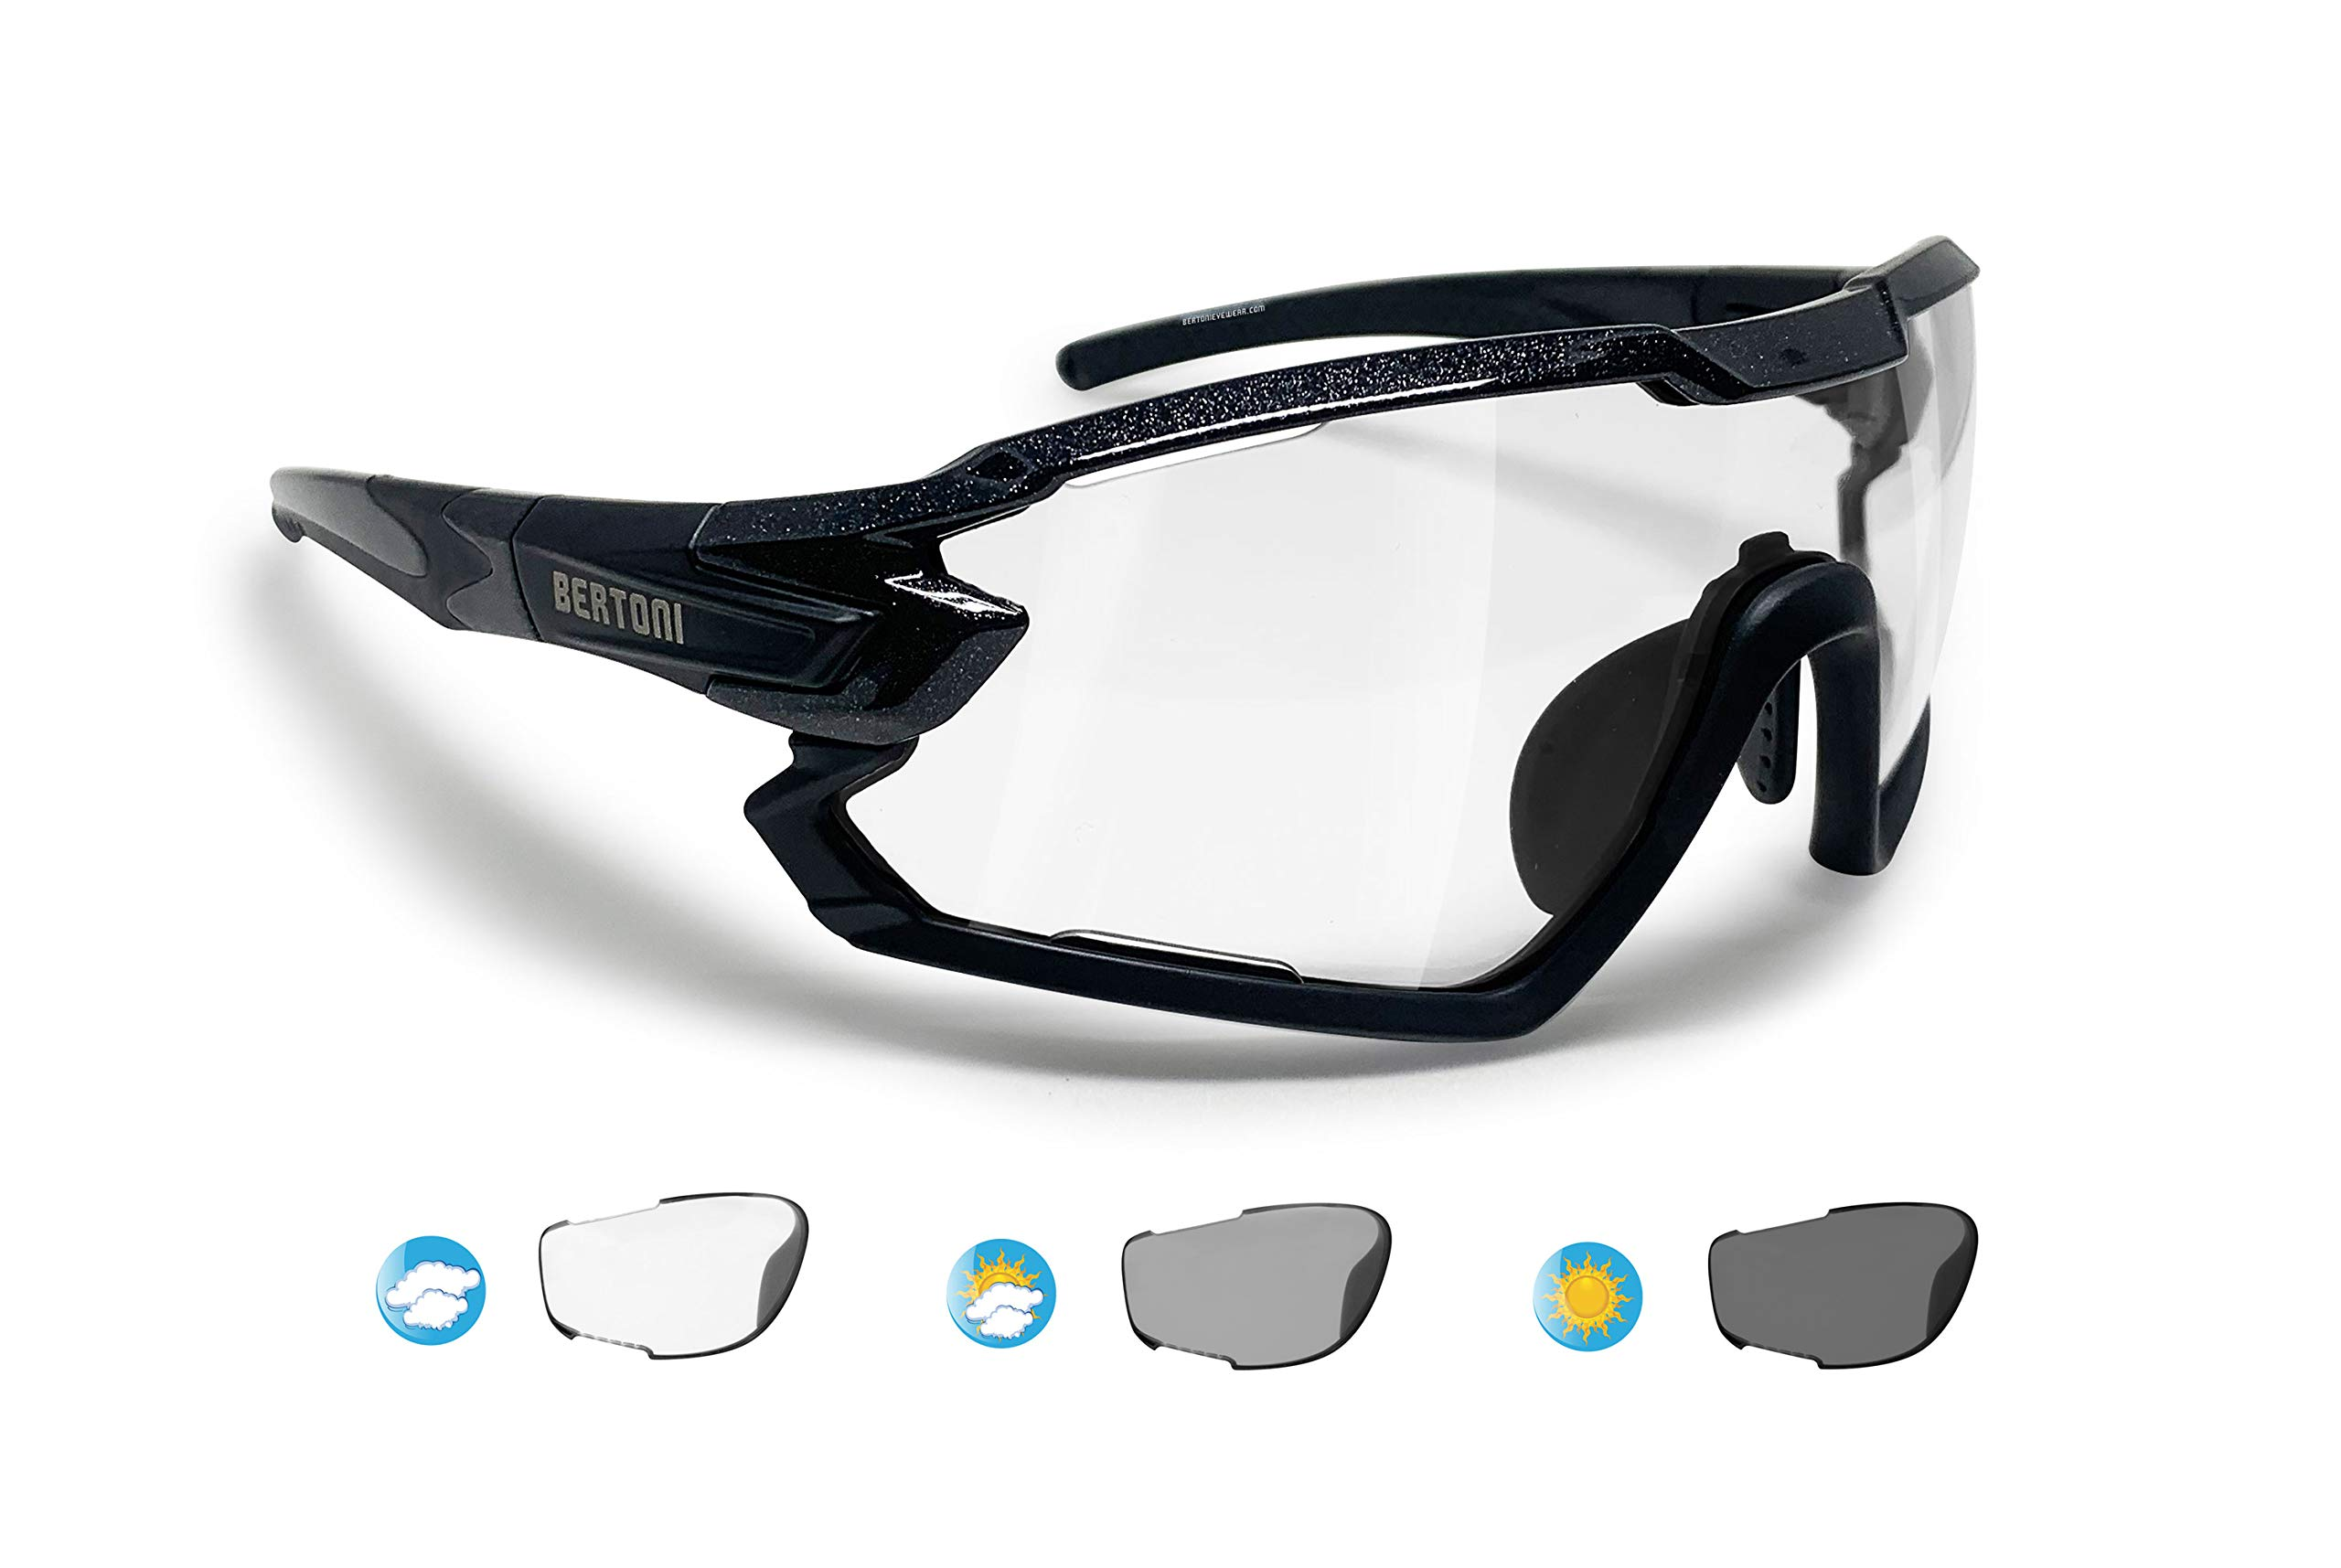 Bertoni Sport Sunglasses Polarized Photochromic Cycling MTB Running Ski Golf Removable Sport Prescription RX Carrier Included mod. Quasar